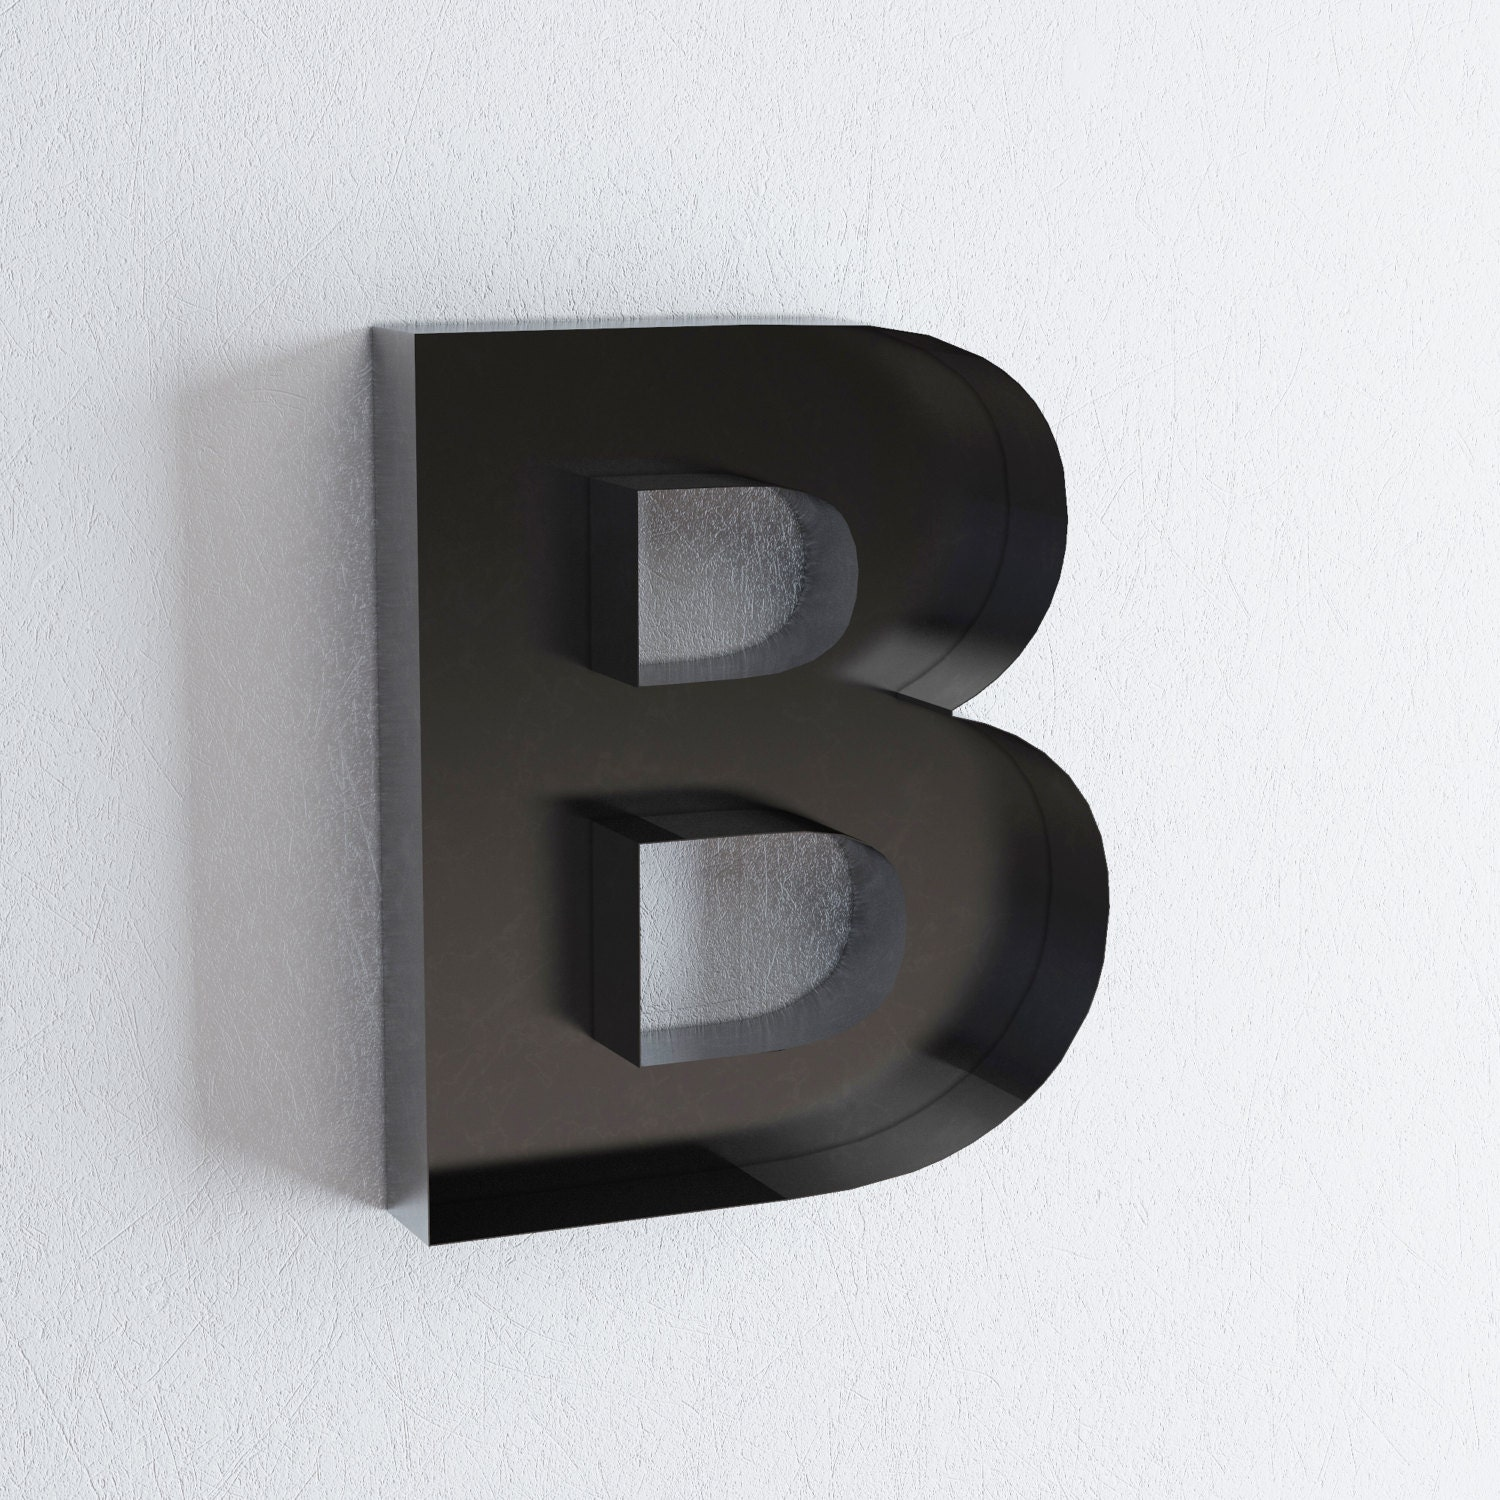 Large Metal Letters For Wall Decor : Large b metal letter wall letters sign